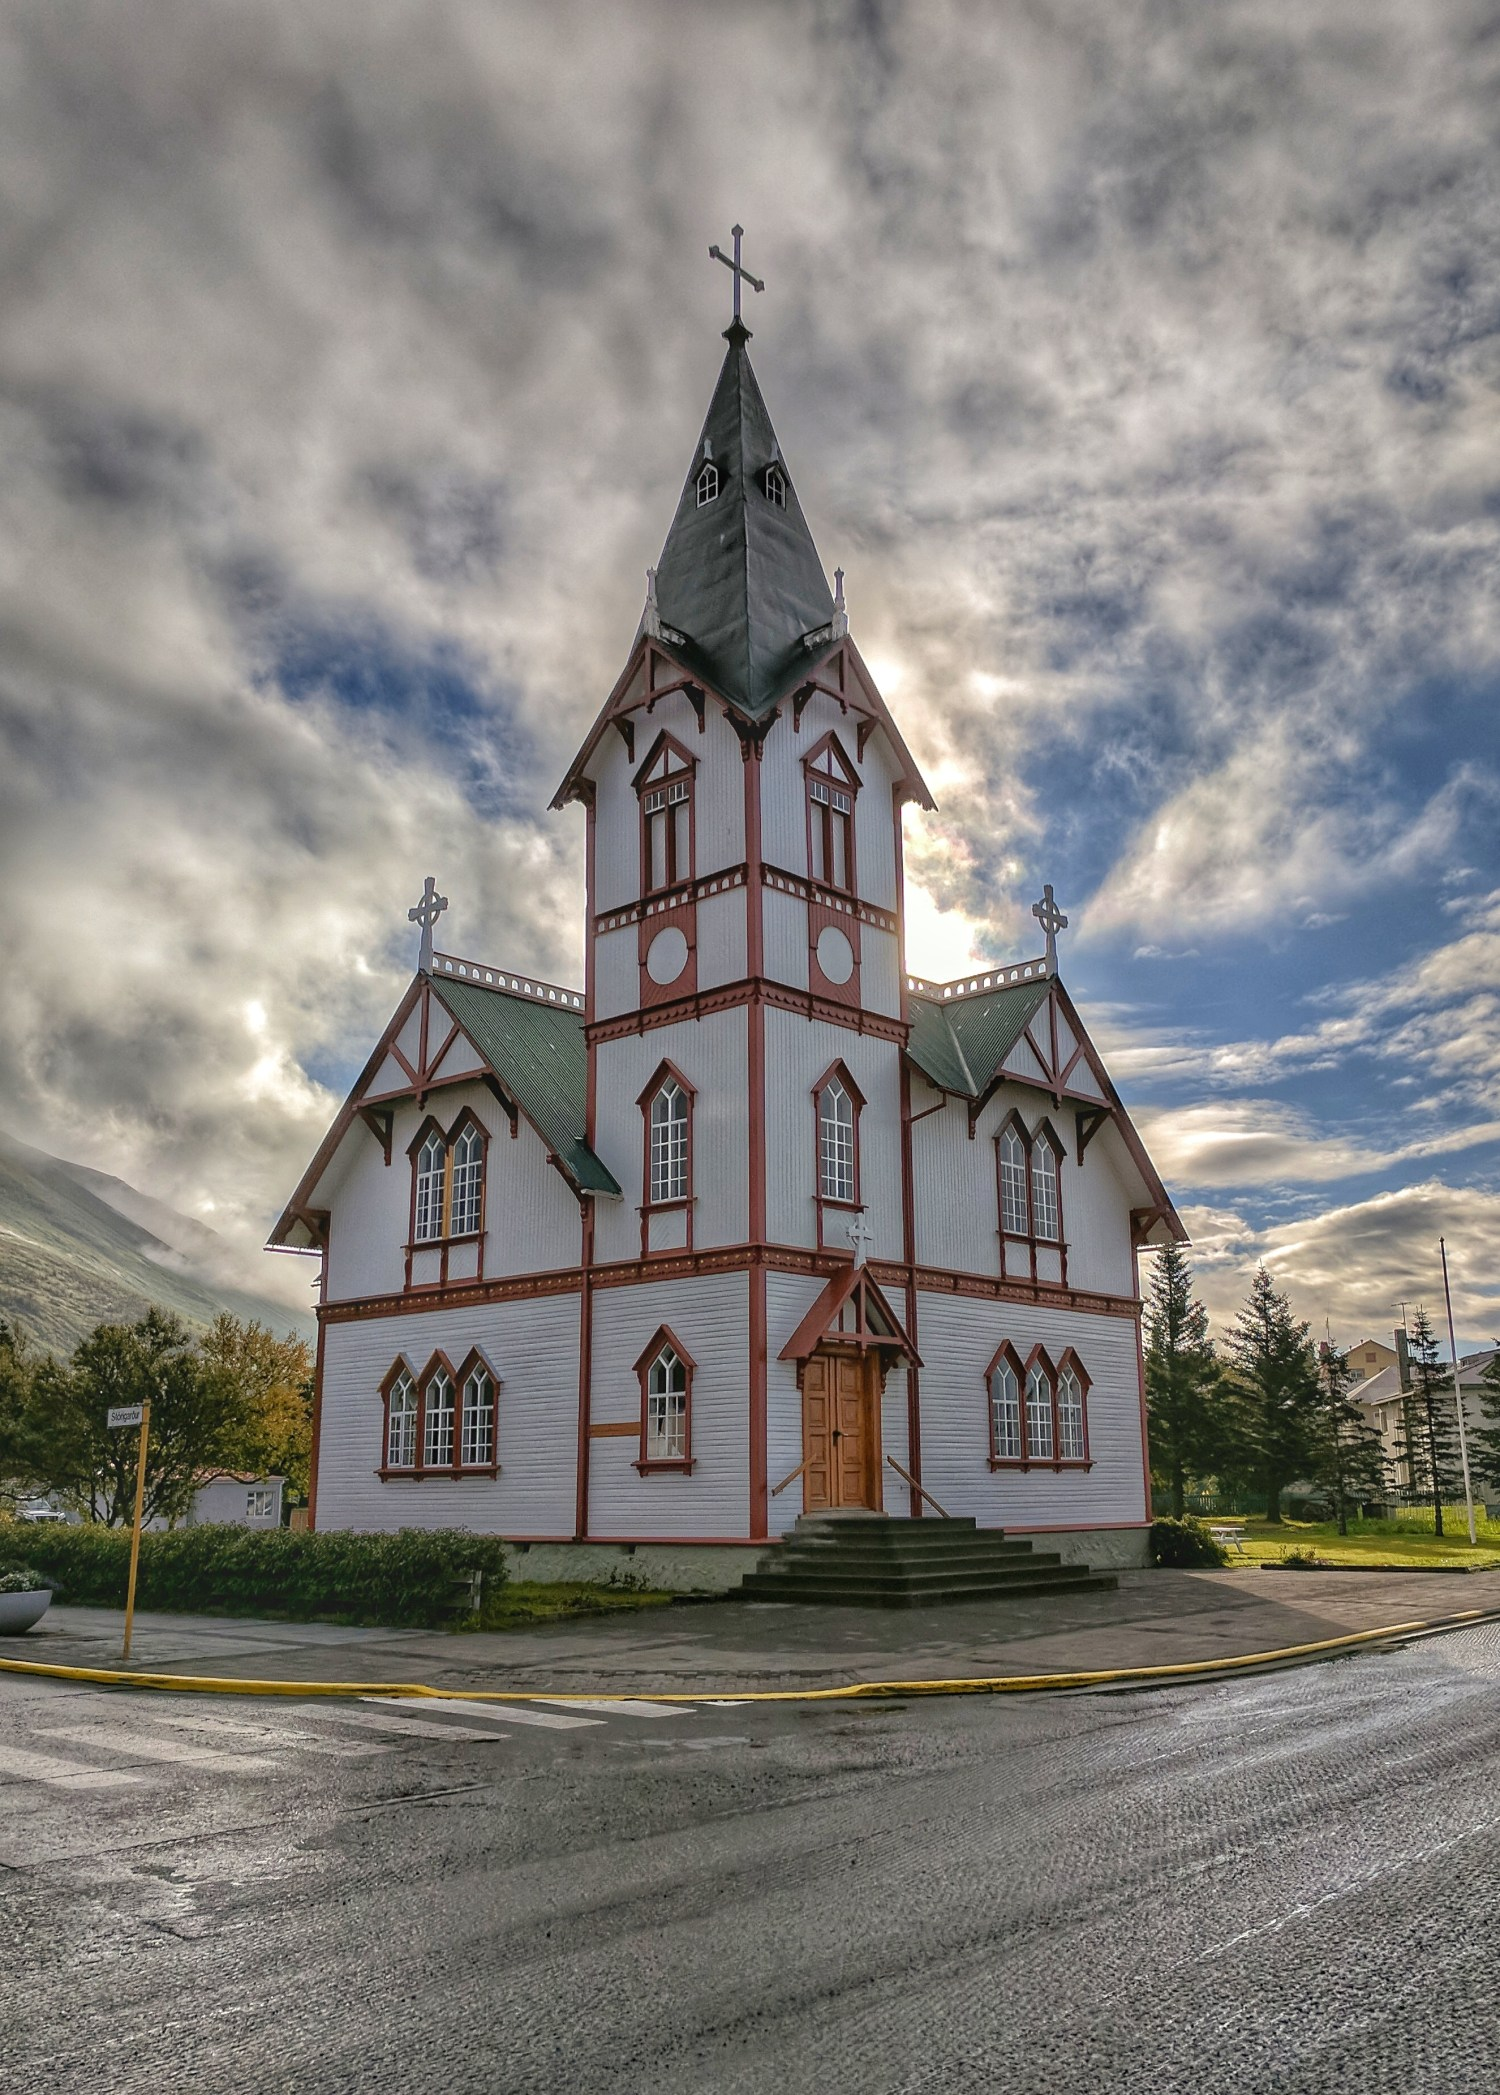 10 top reasons to visit Iceland. Adding a distinctly quaint feel to the town, one of the most significant landmarks in Húsavík is the church.